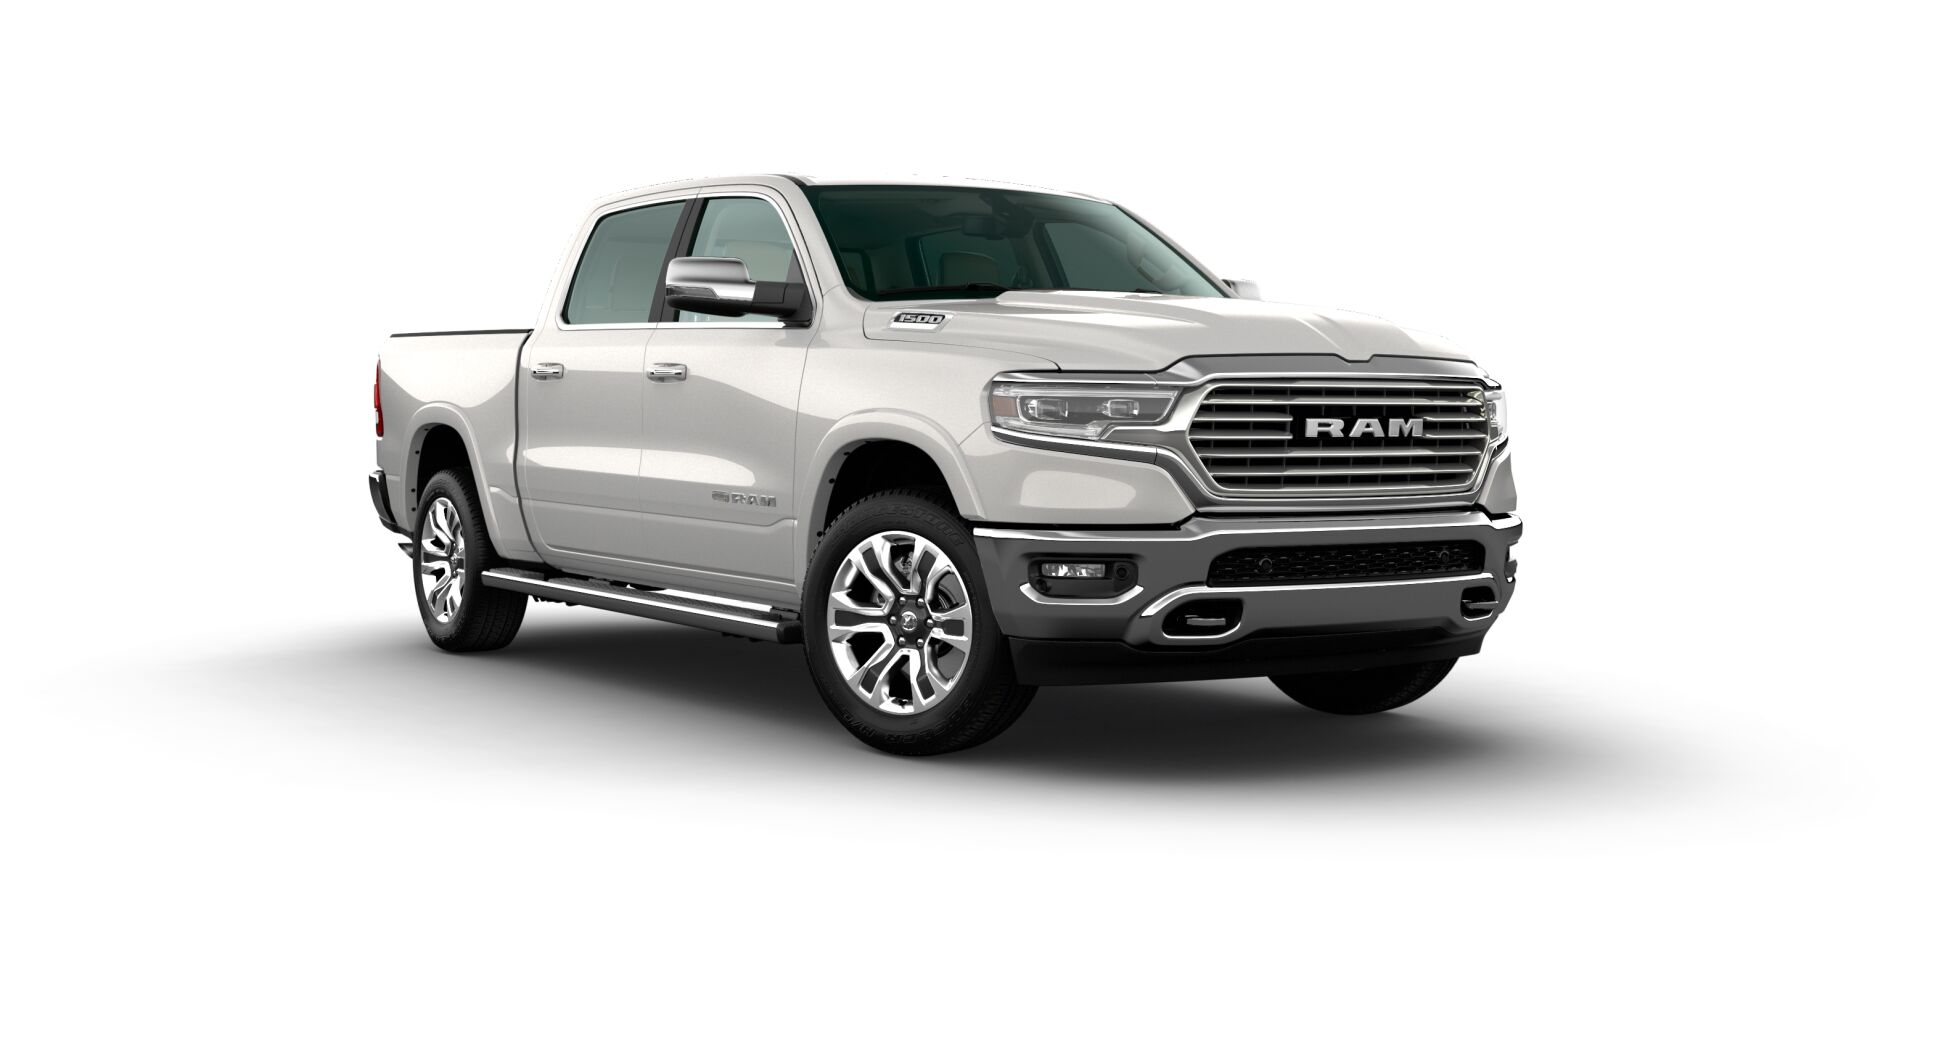 2020 Ram 1500 Longhorn Front White Exterior Picture